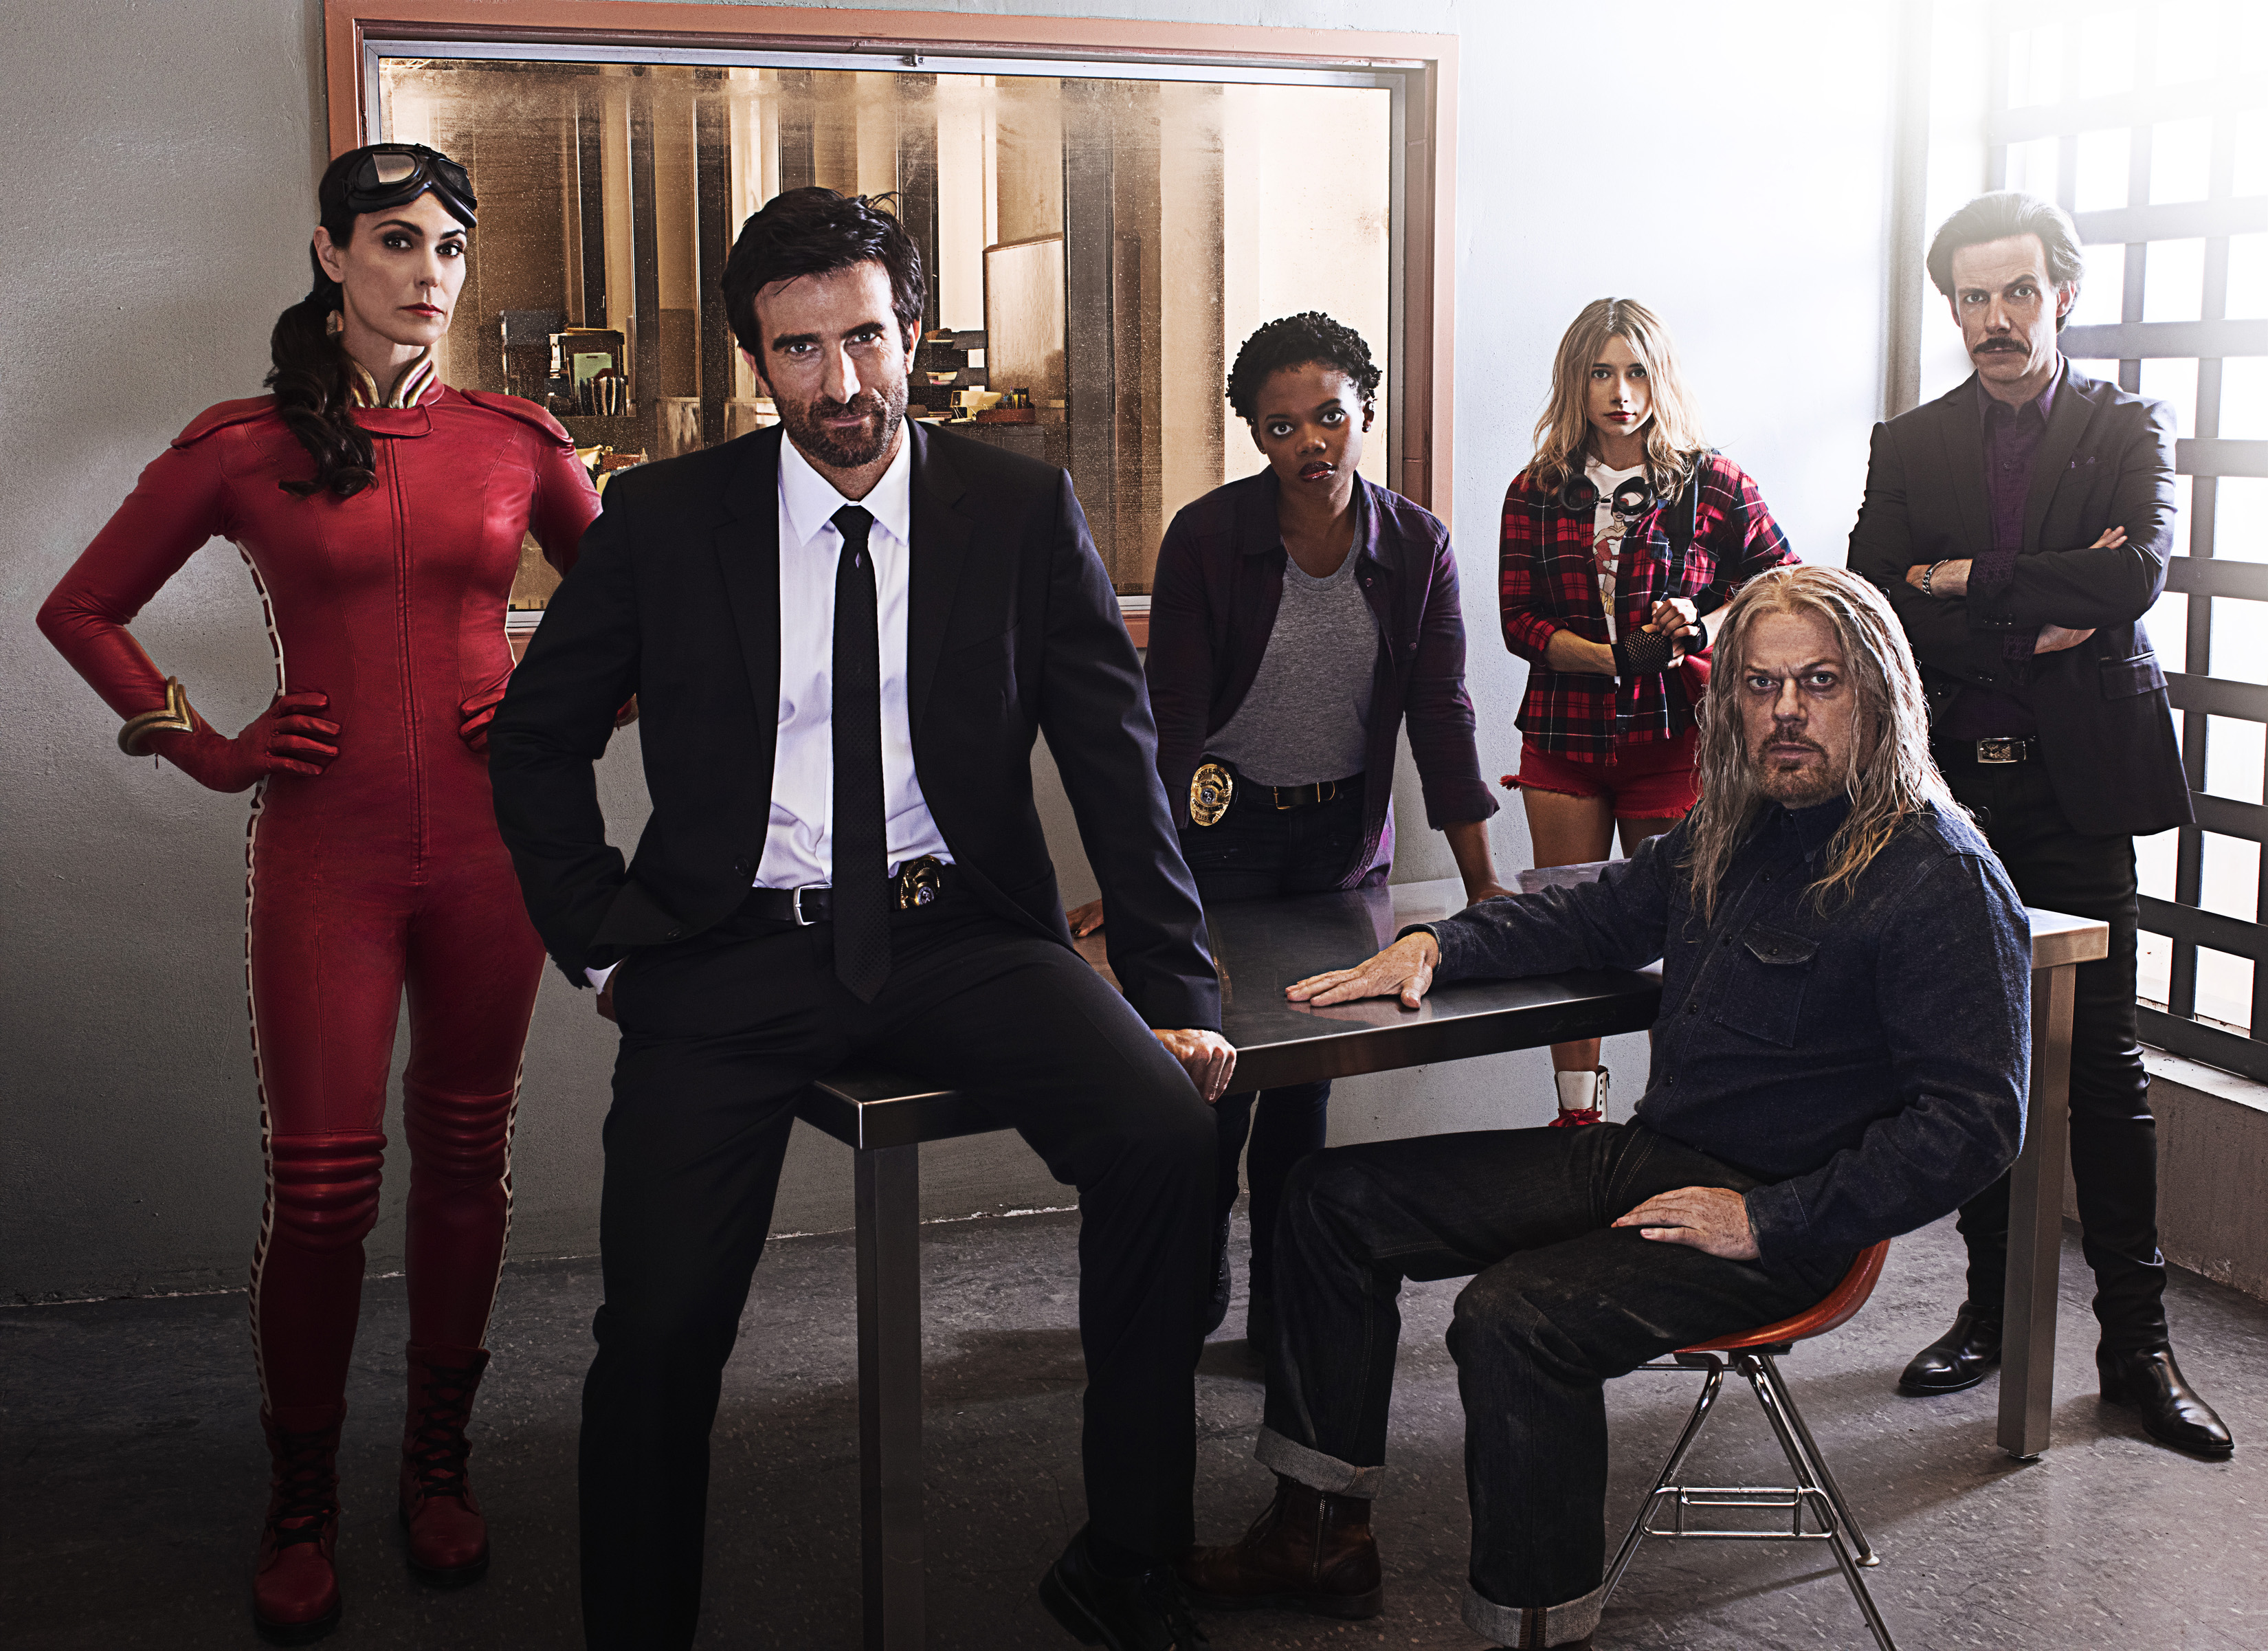 Powers review: PSN's first scripted TV series flies past a shaky start